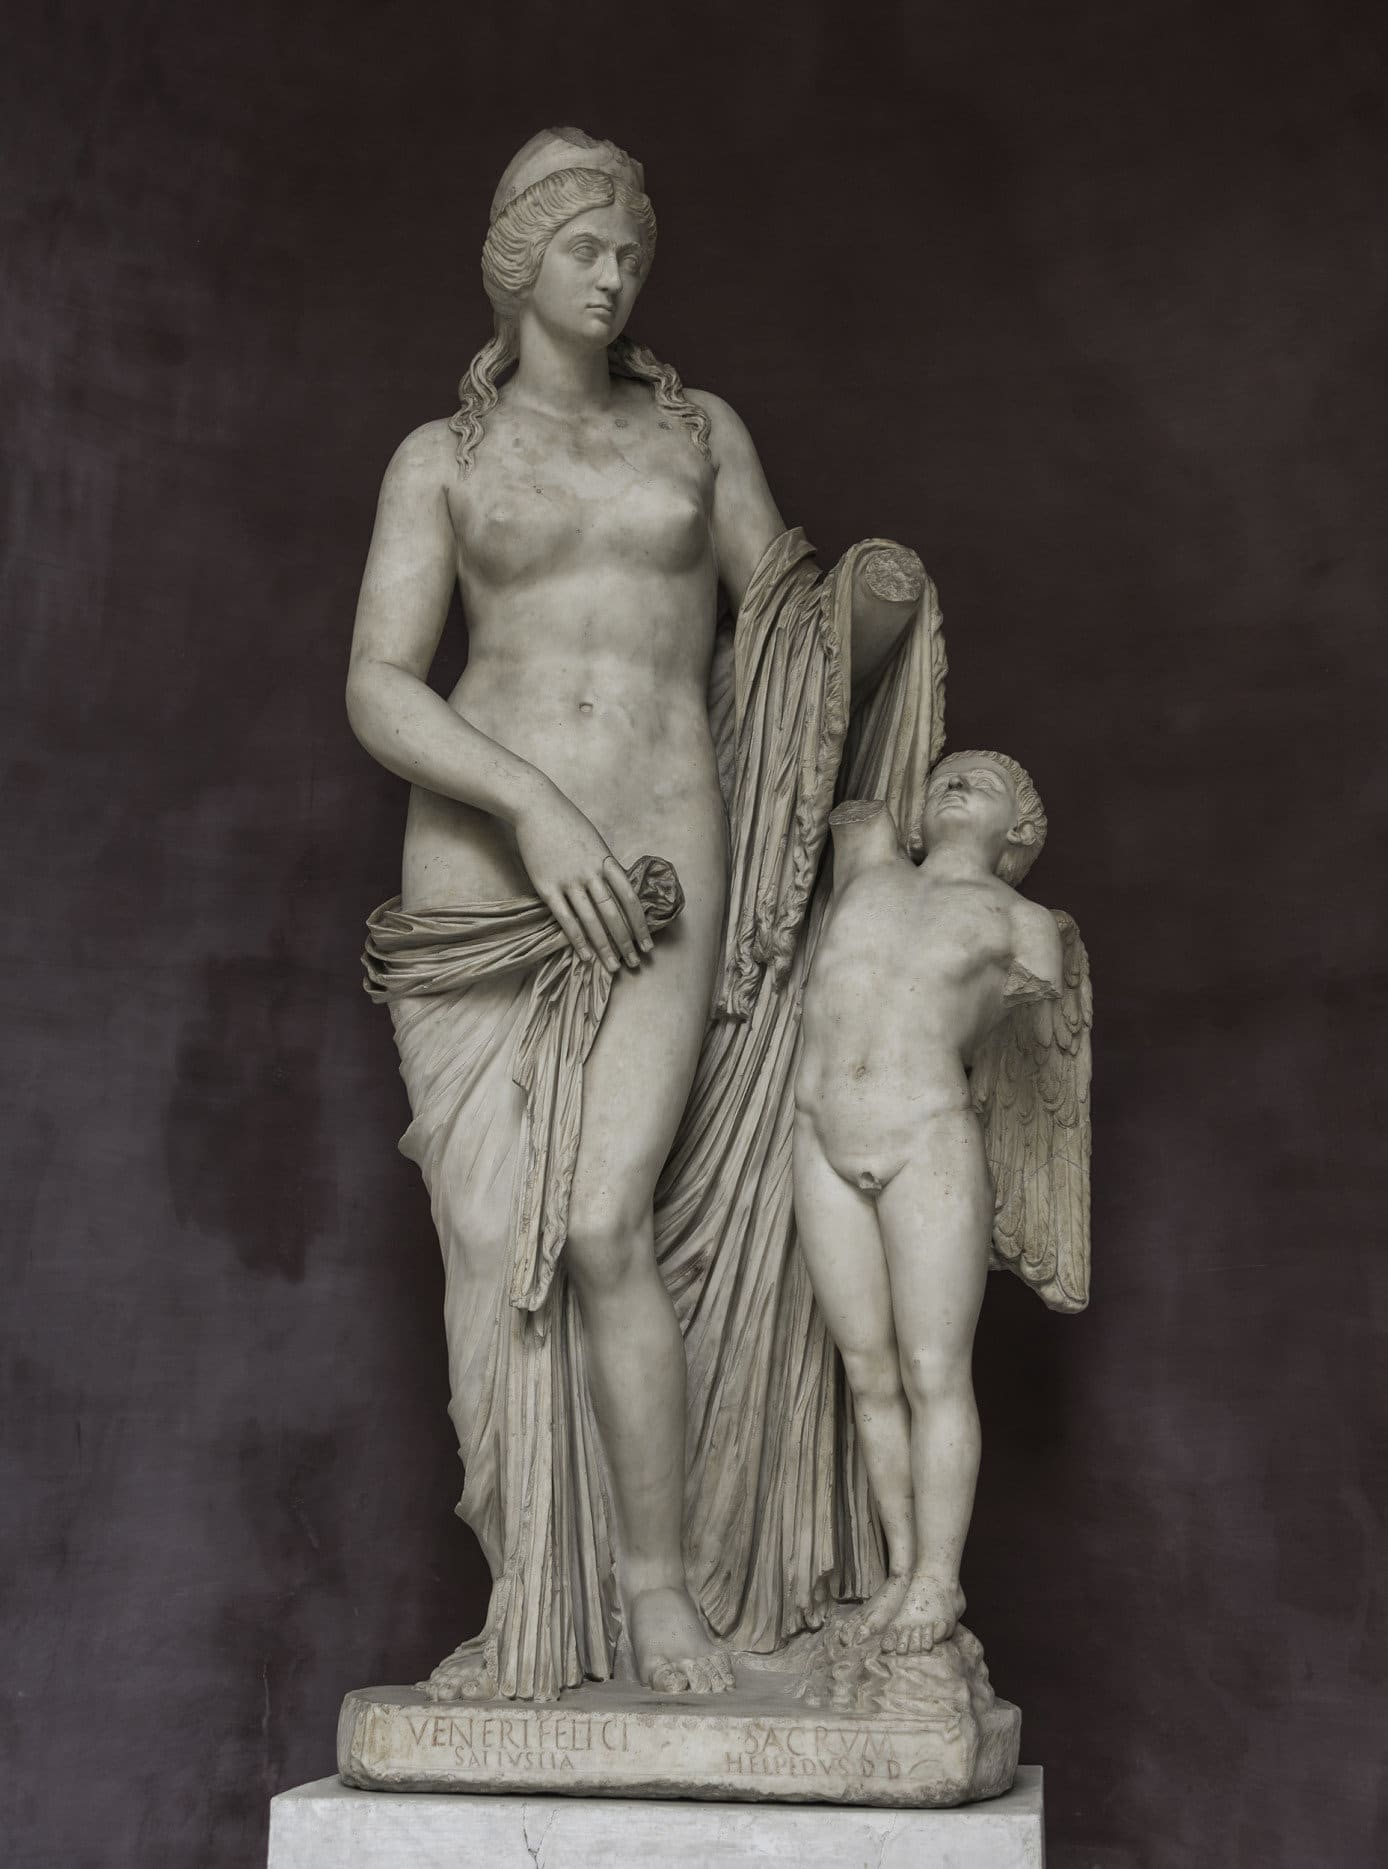 Statue of Venus with a boy, Capitoline Museums